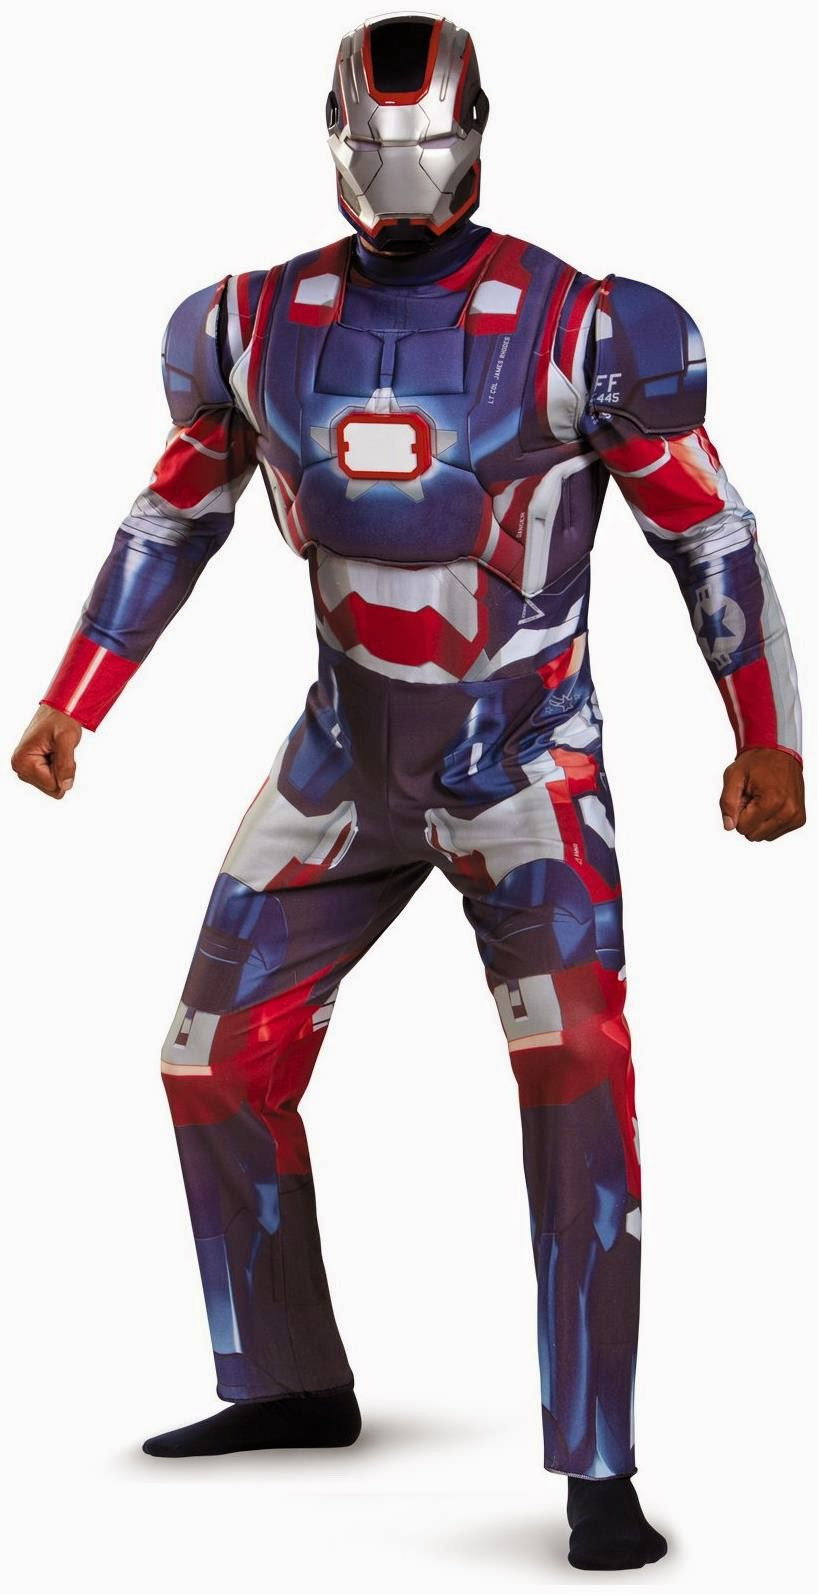 http://www.partybell.com/p-34891-iron-man-3-mark-42-deluxe-adult-costume.aspx?utm_source=Blog&utm_medium=Social&utm_campaign=iron-man-theme-party-blog